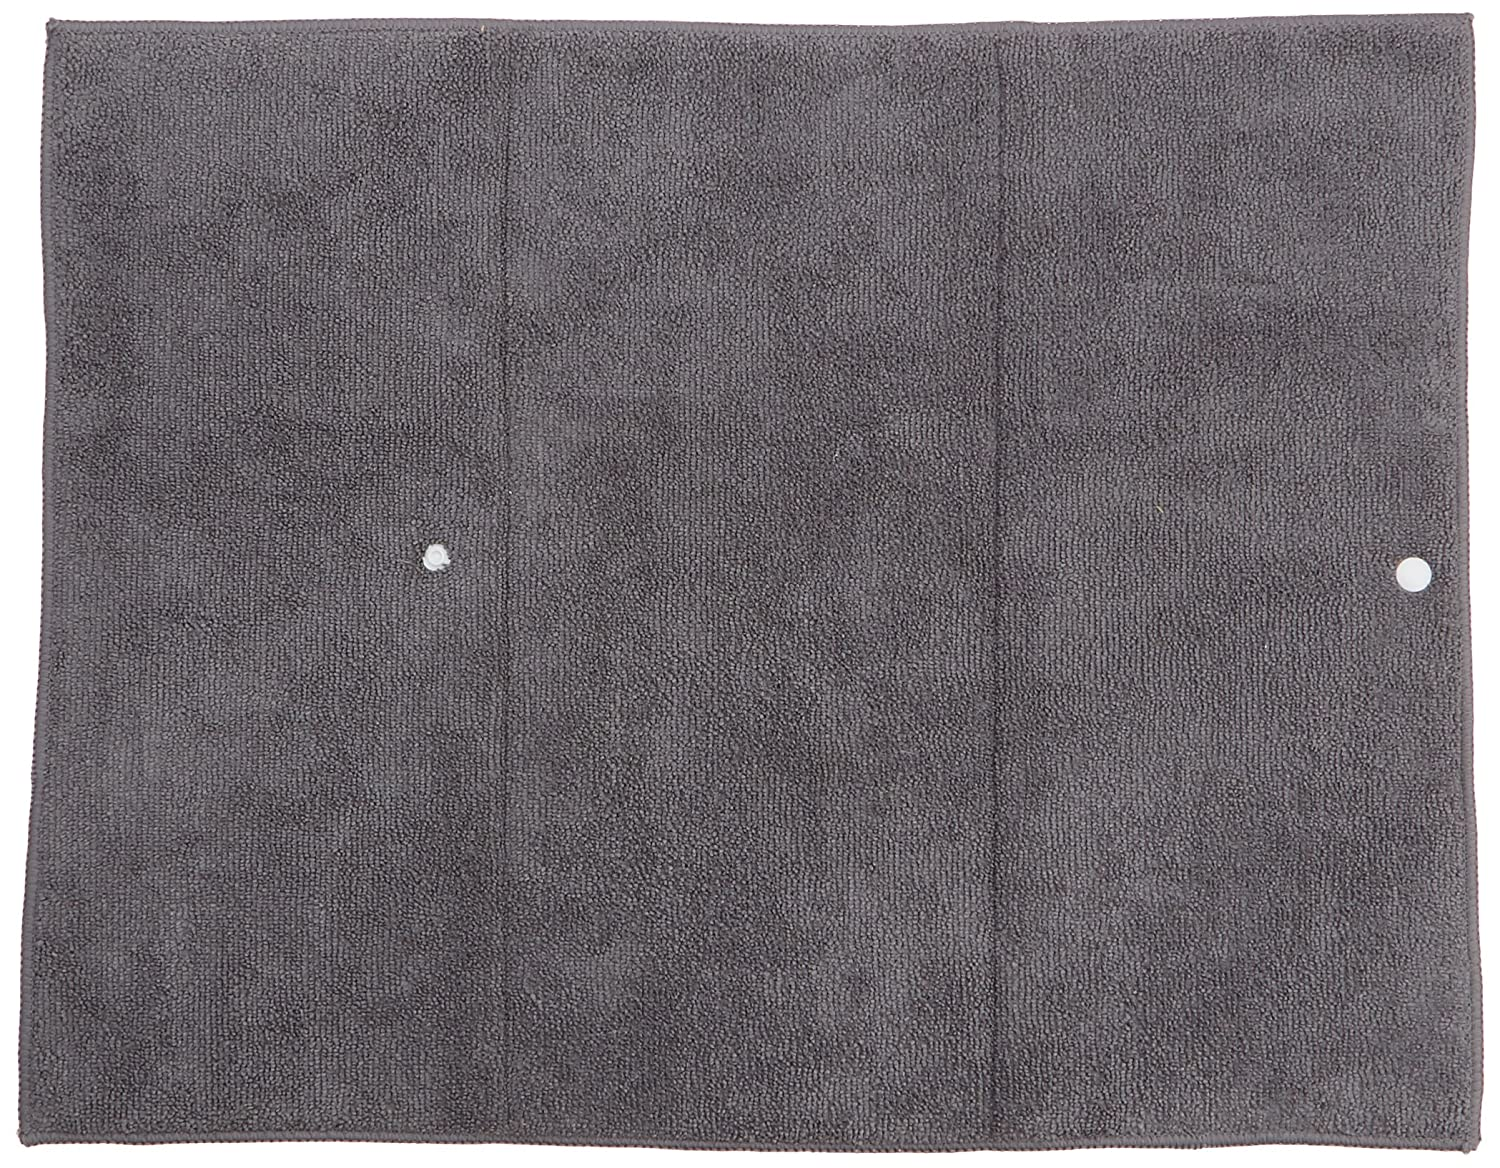 Discussion on this topic: Kay Dee Designs Drying Mat (Set of , kay-dee-designs-drying-mat-set-of/